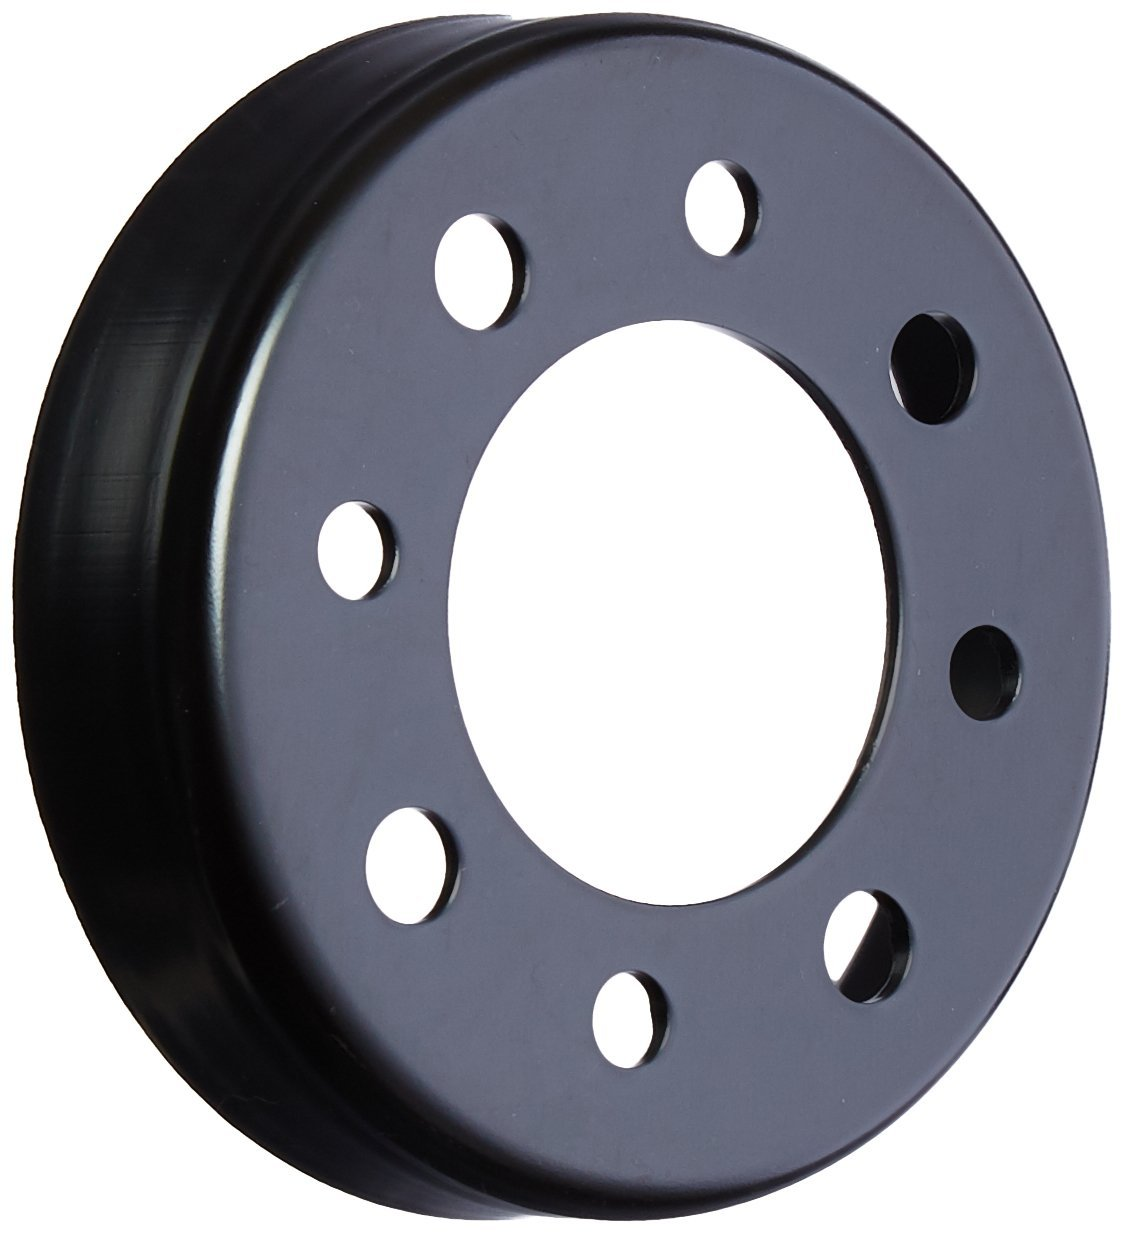 Maxpower 485 Brake Drum, 4''